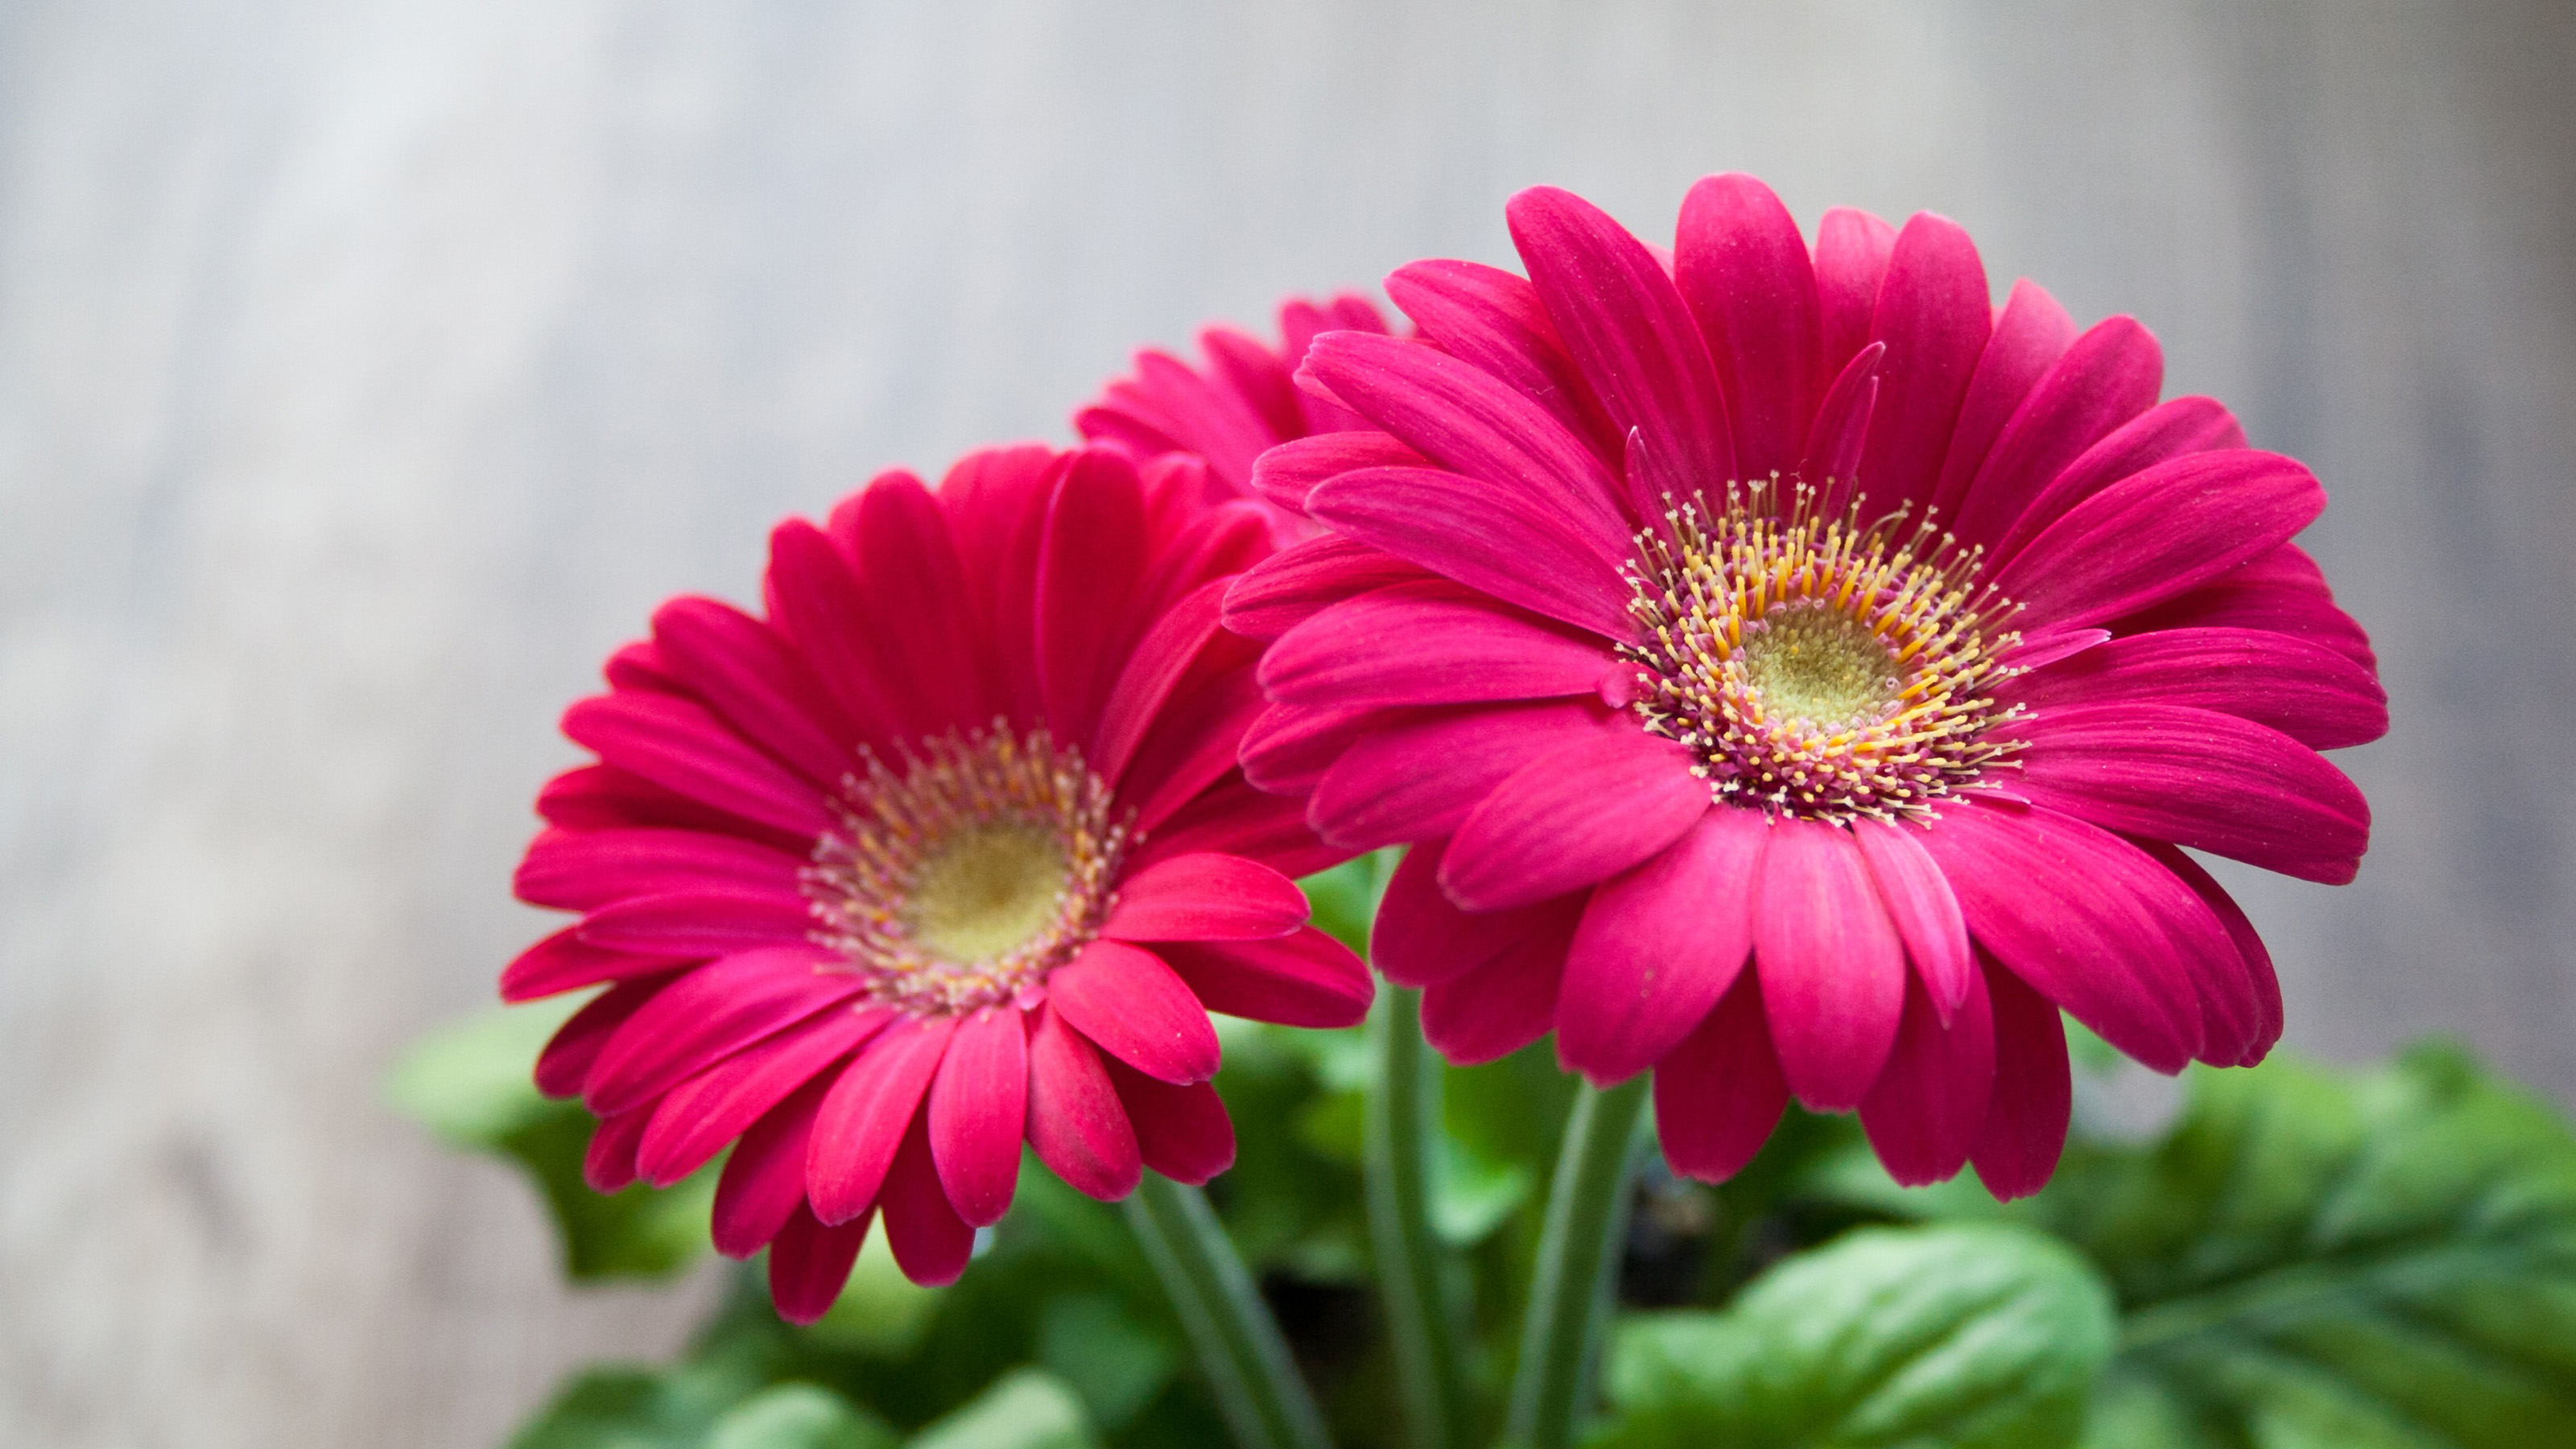 Red Flowers Of Gerbera Hd Wallpaper 3200x1800 Wallpapers13 Com